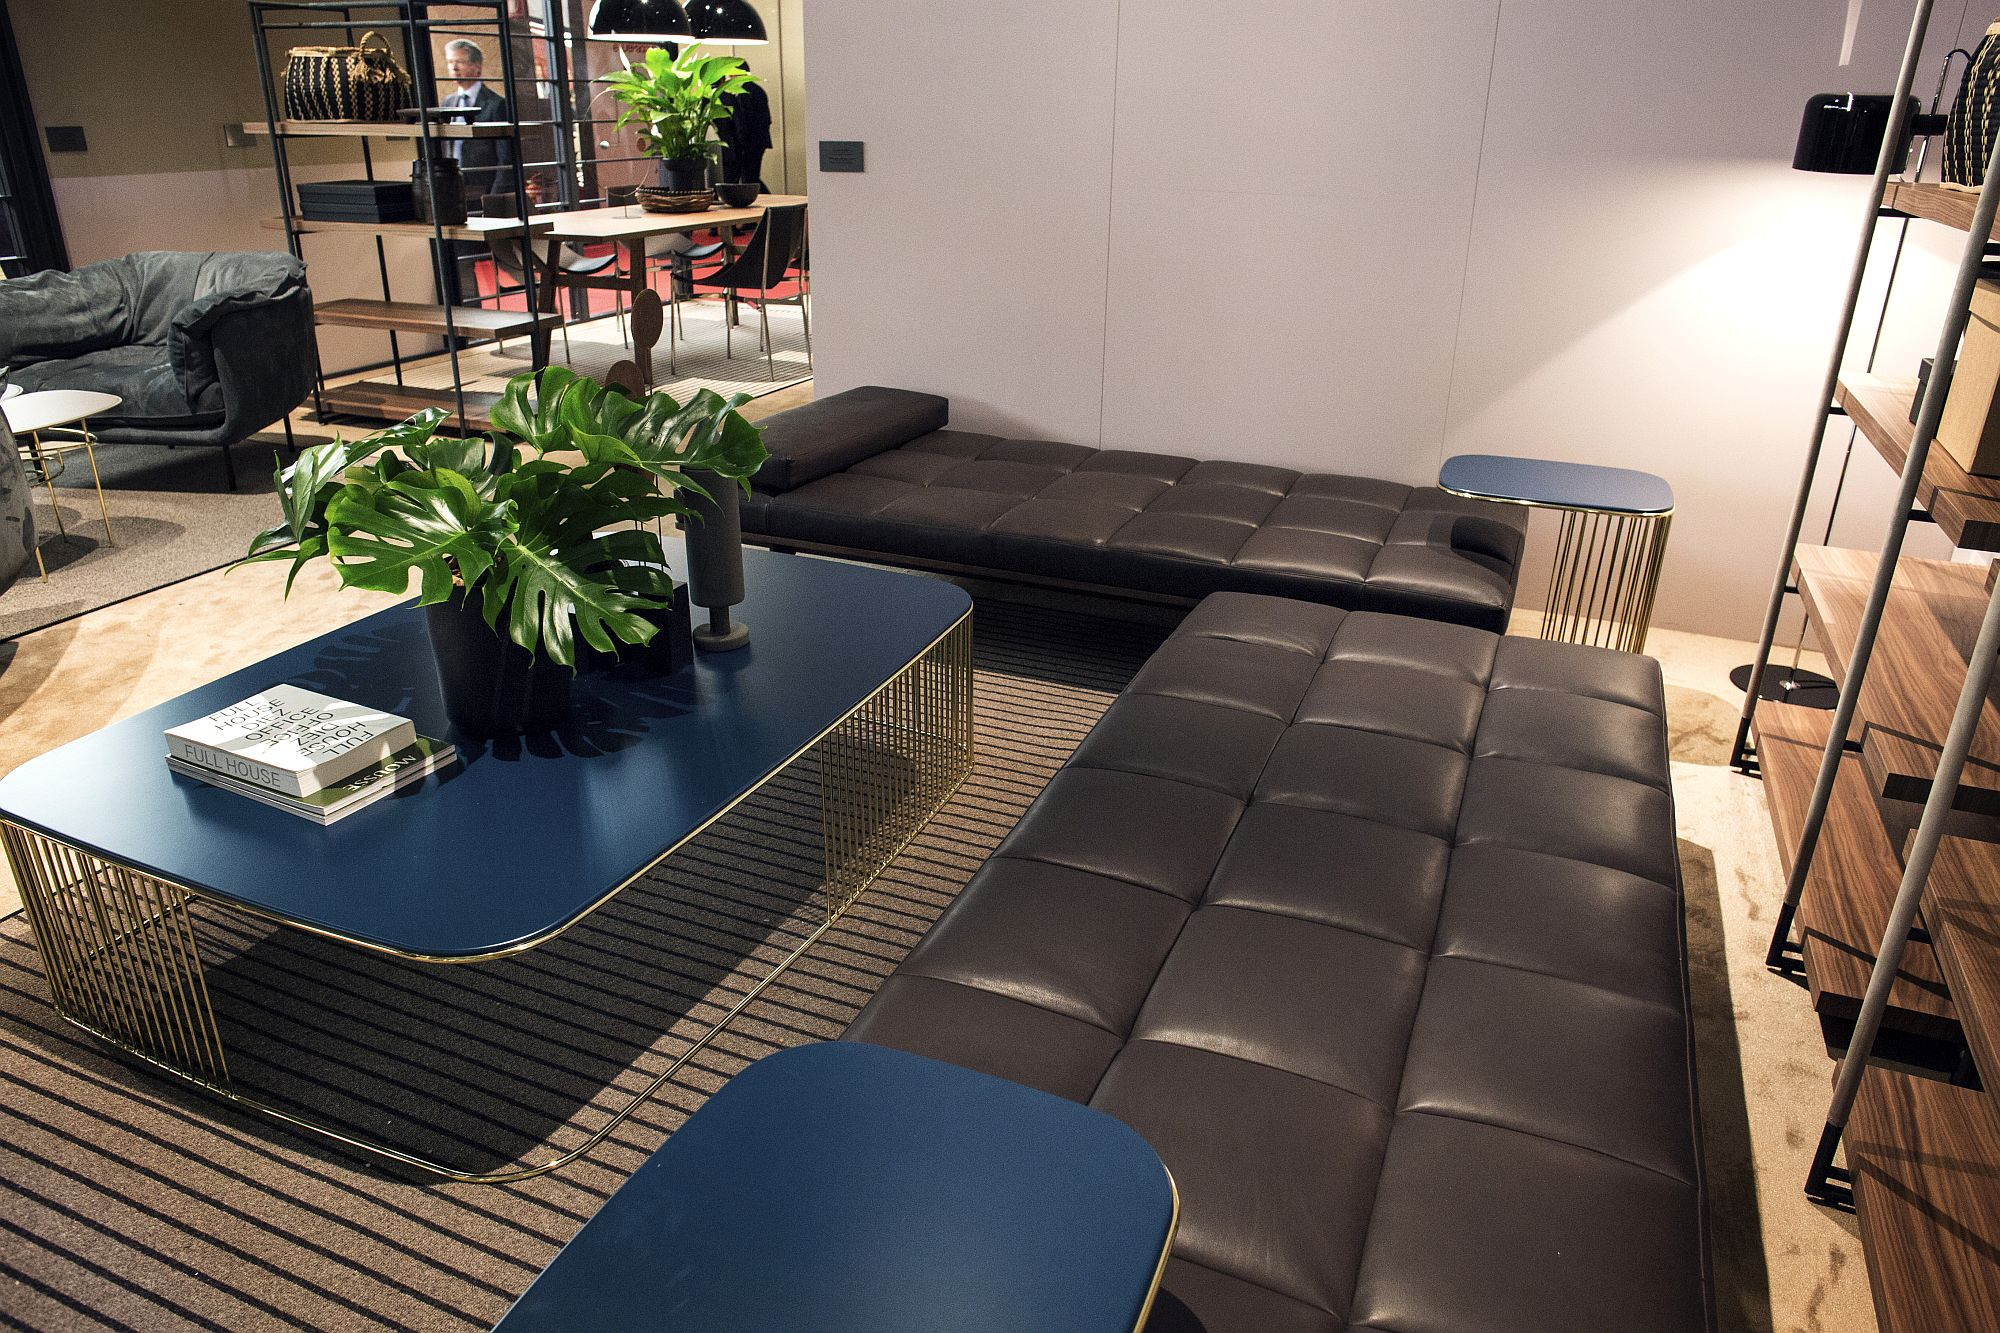 Gorgeous-coffee-table-in-blue-with-metallic-base-for-the-living-room